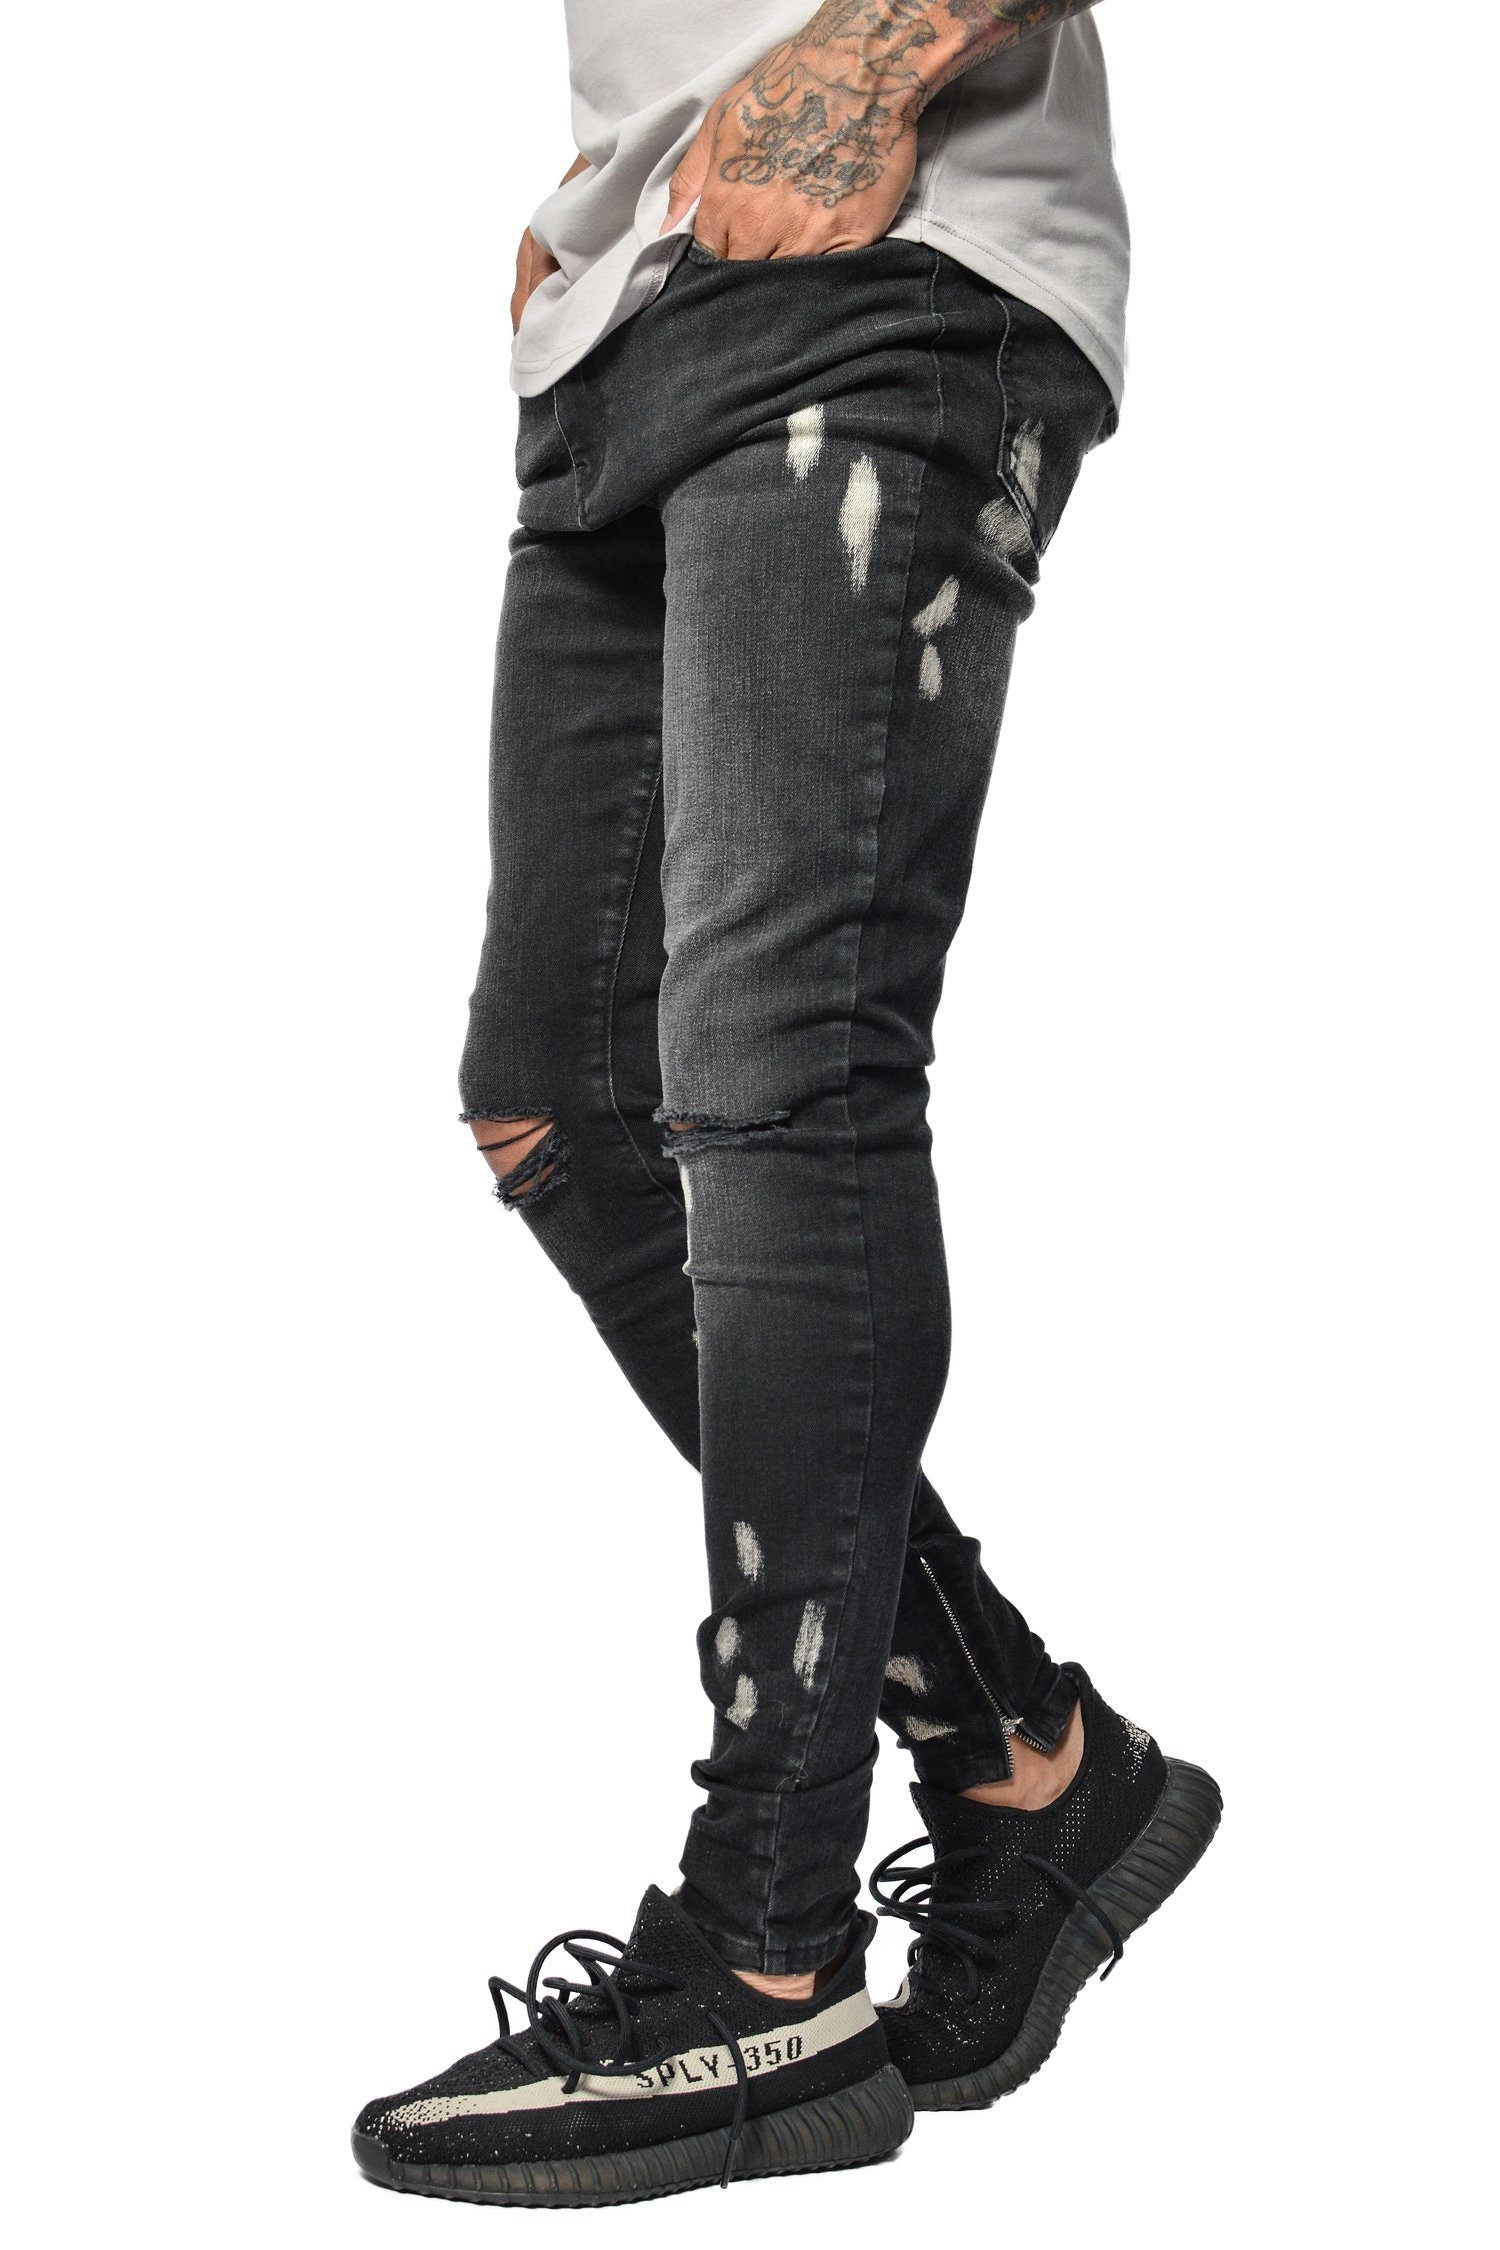 Bruno Bleached Denim Black JEANS PEGADOR